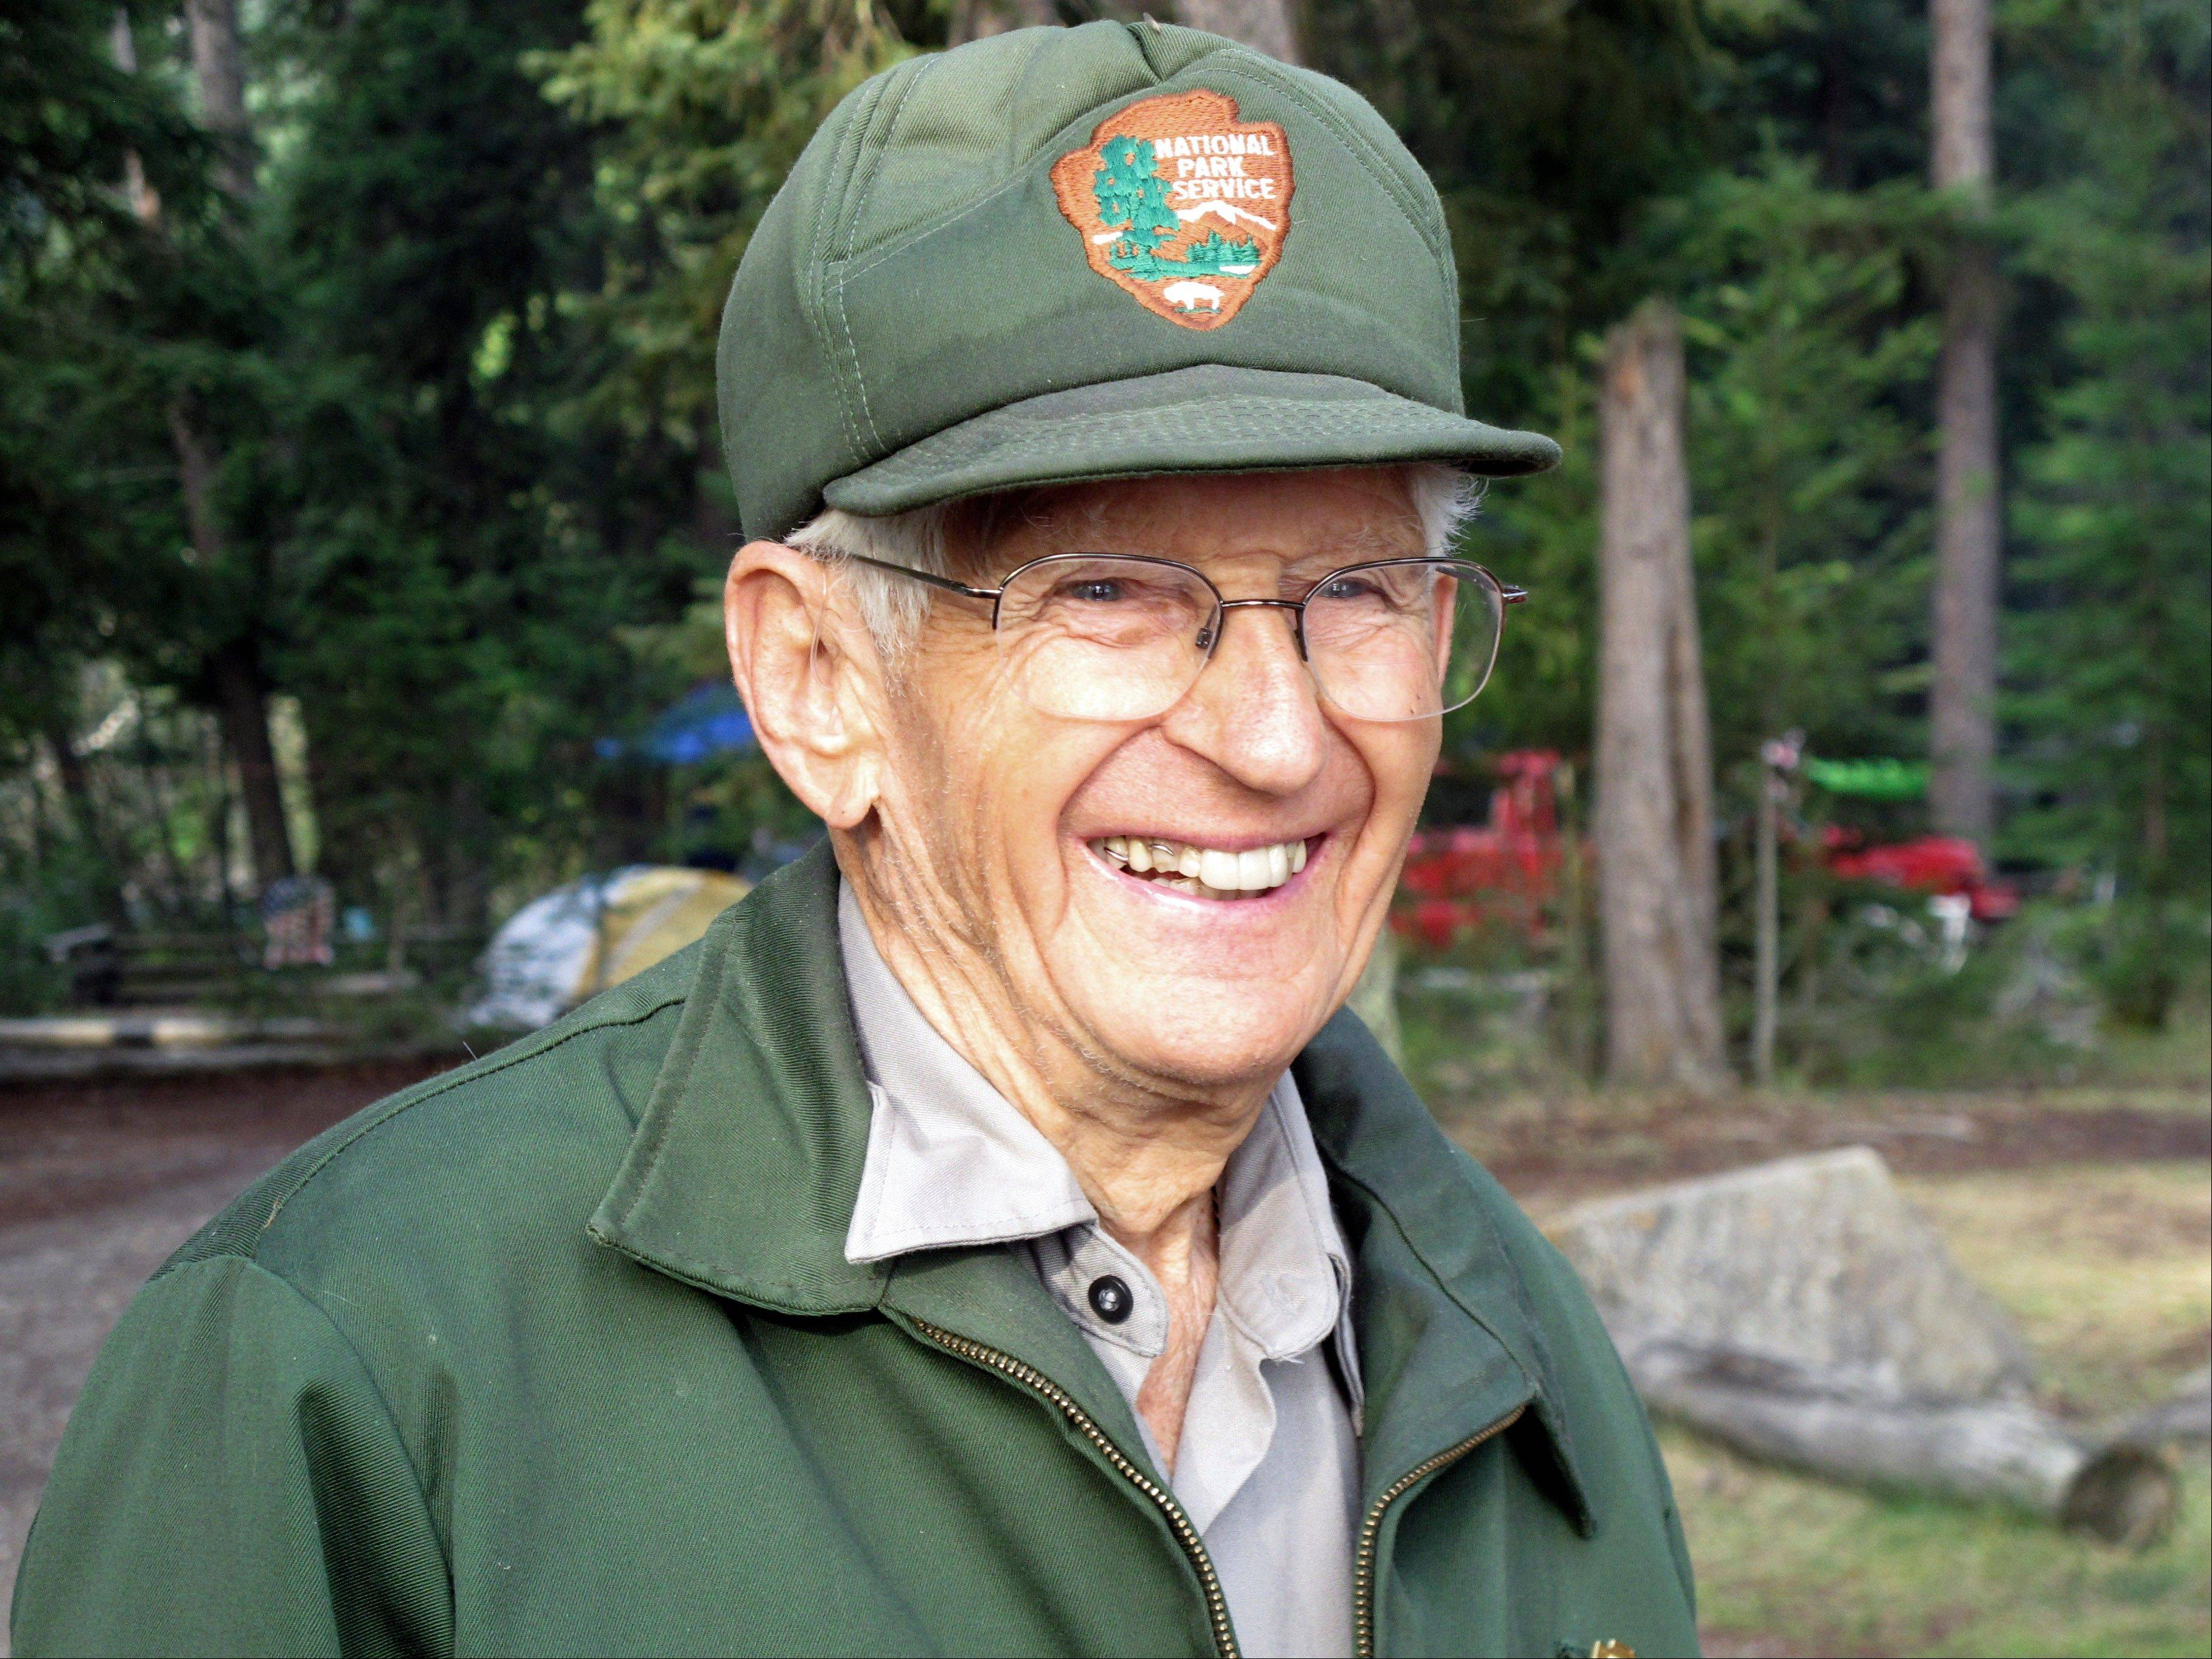 Lyle Ruterbories smiles as he speaks with a visitor to the Kintla Lake Campground in Glacier National Park, Mont. Ruterbories is the National Park Service's oldest ranger at age 93.